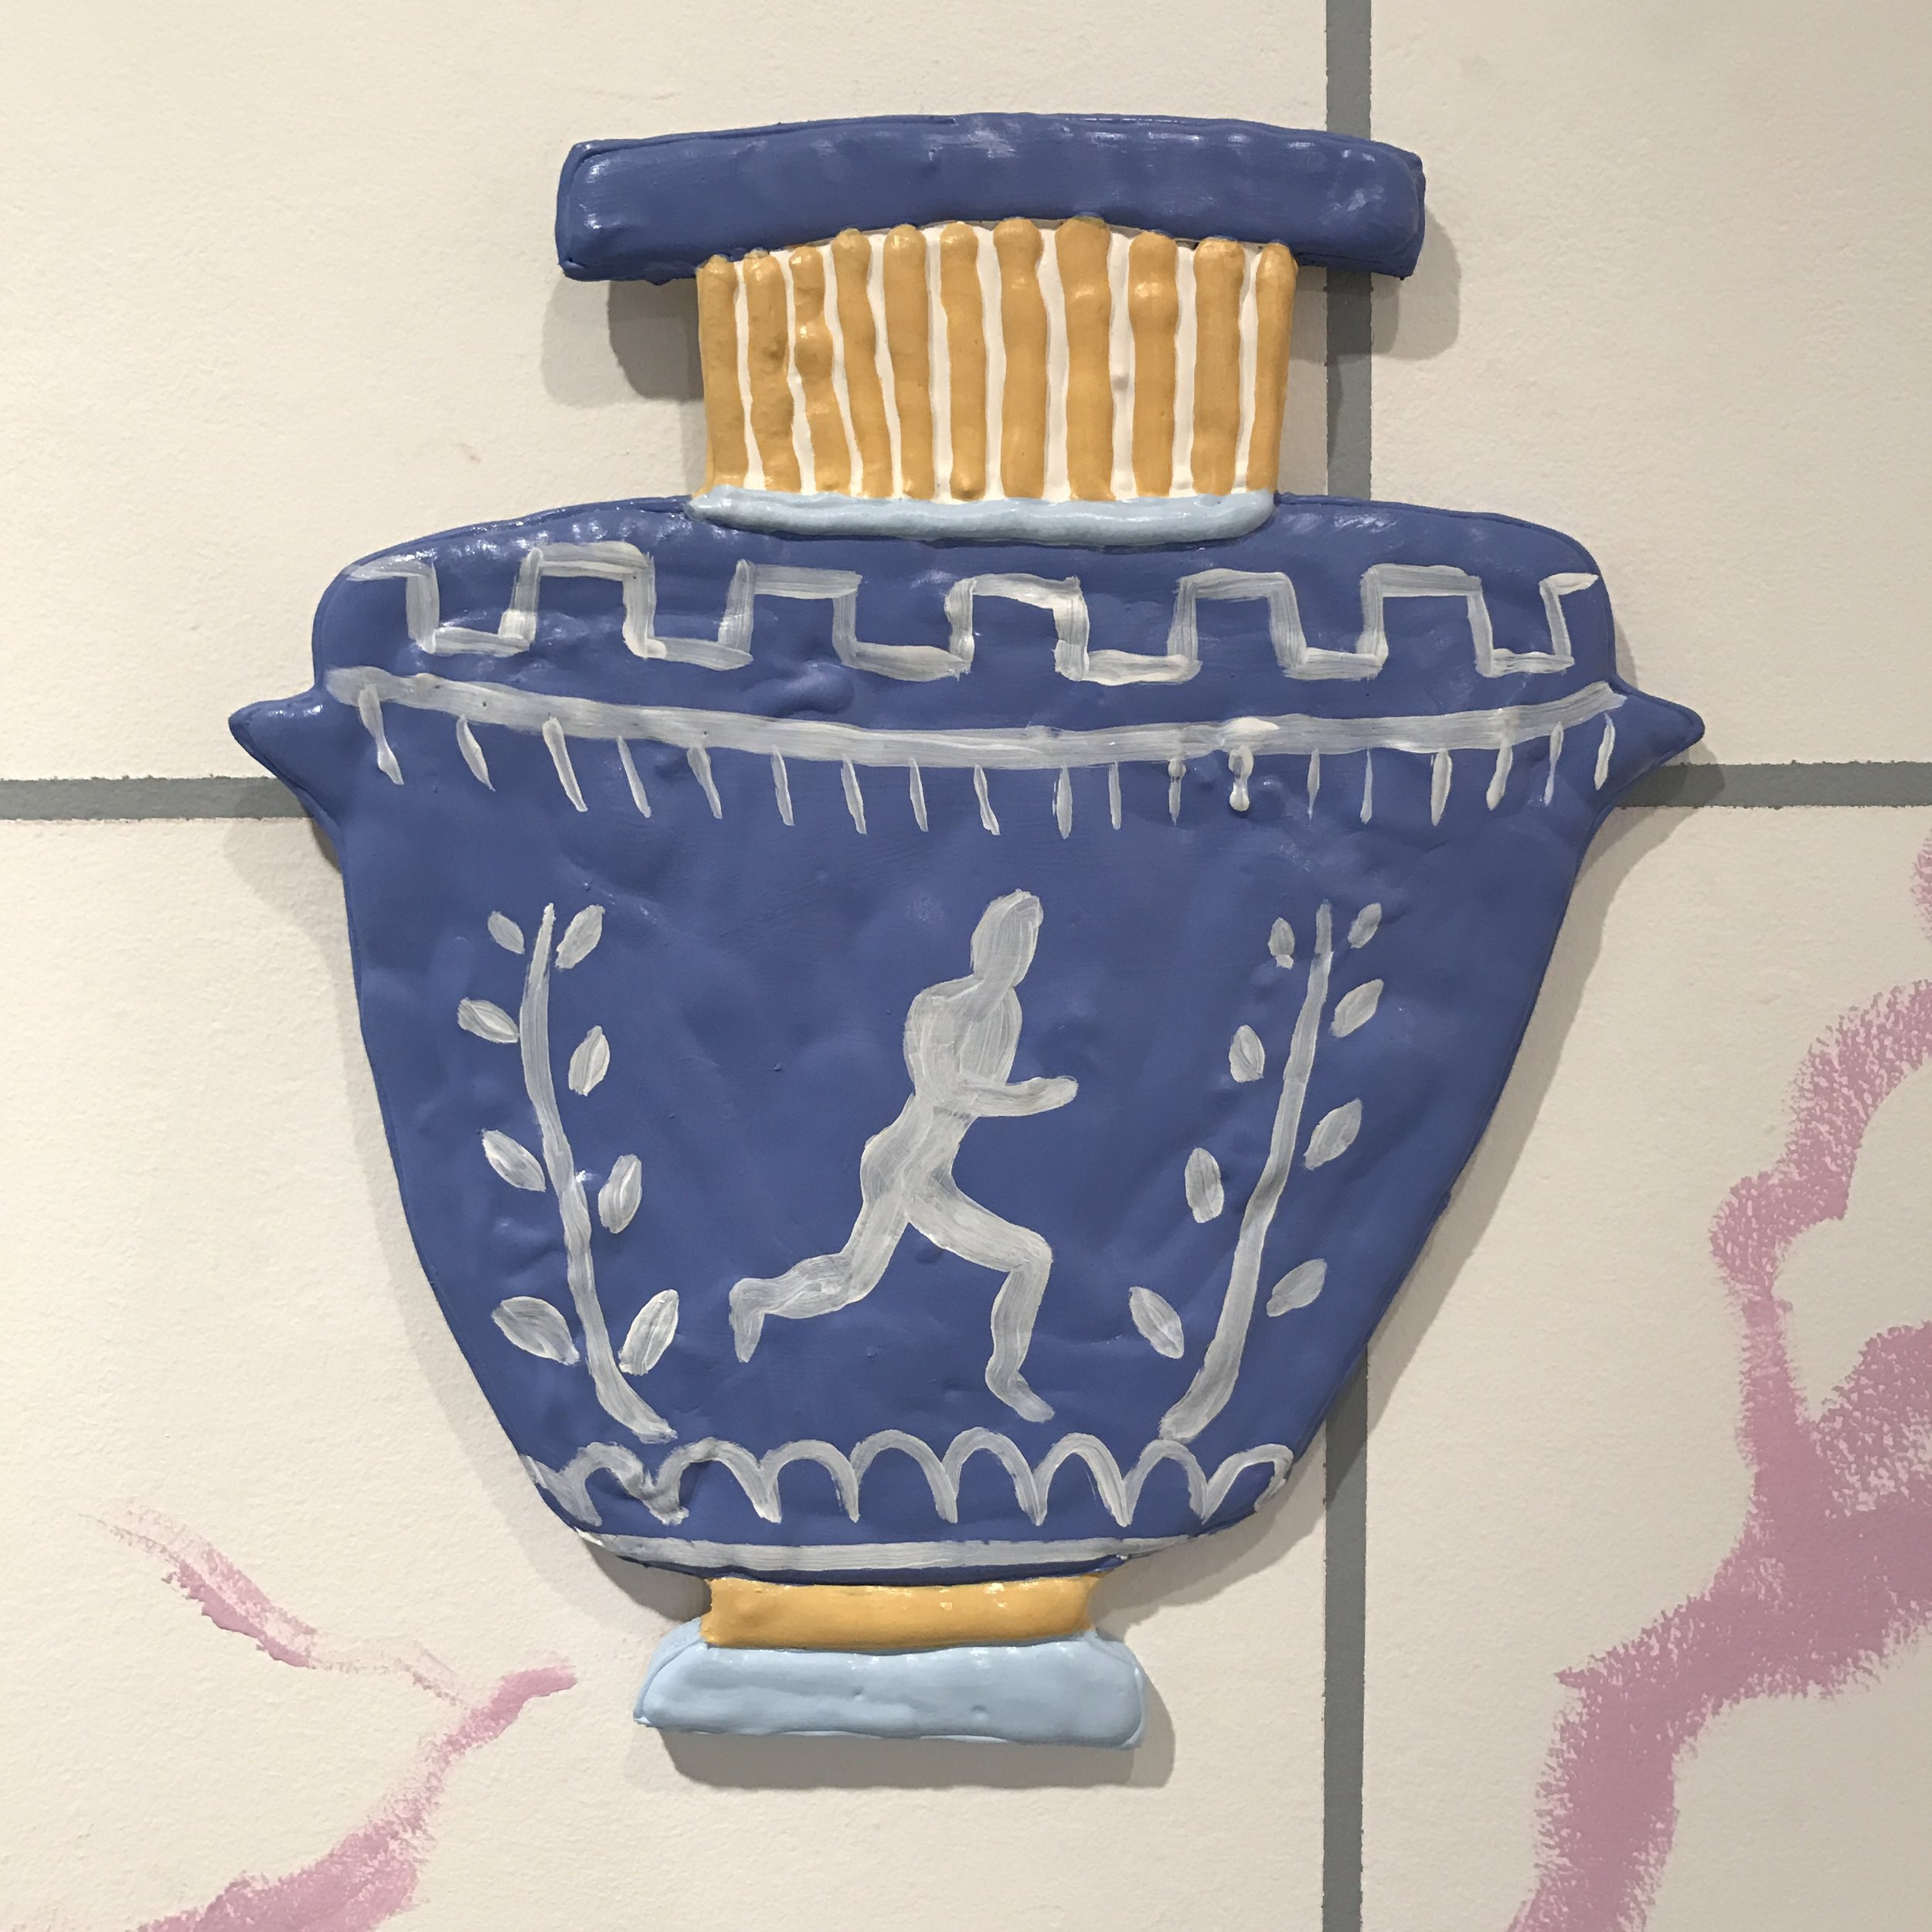 Running Man Amphora